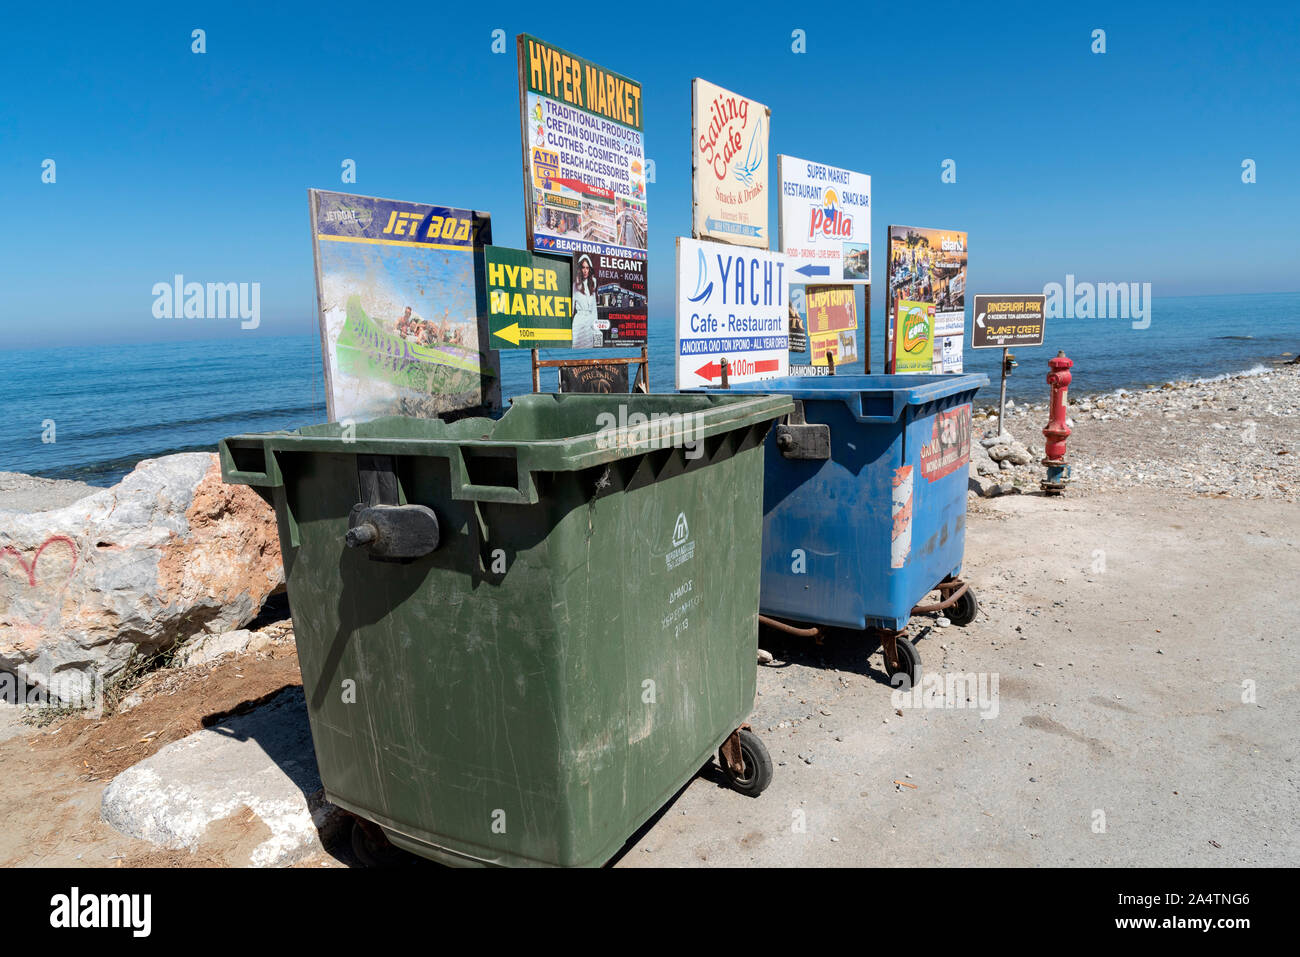 Gouves, Crete, Greece, October 2019.  Rubbish and recycling bins on the beach road in the seaside resort of Gouves, Crete. Stock Photo